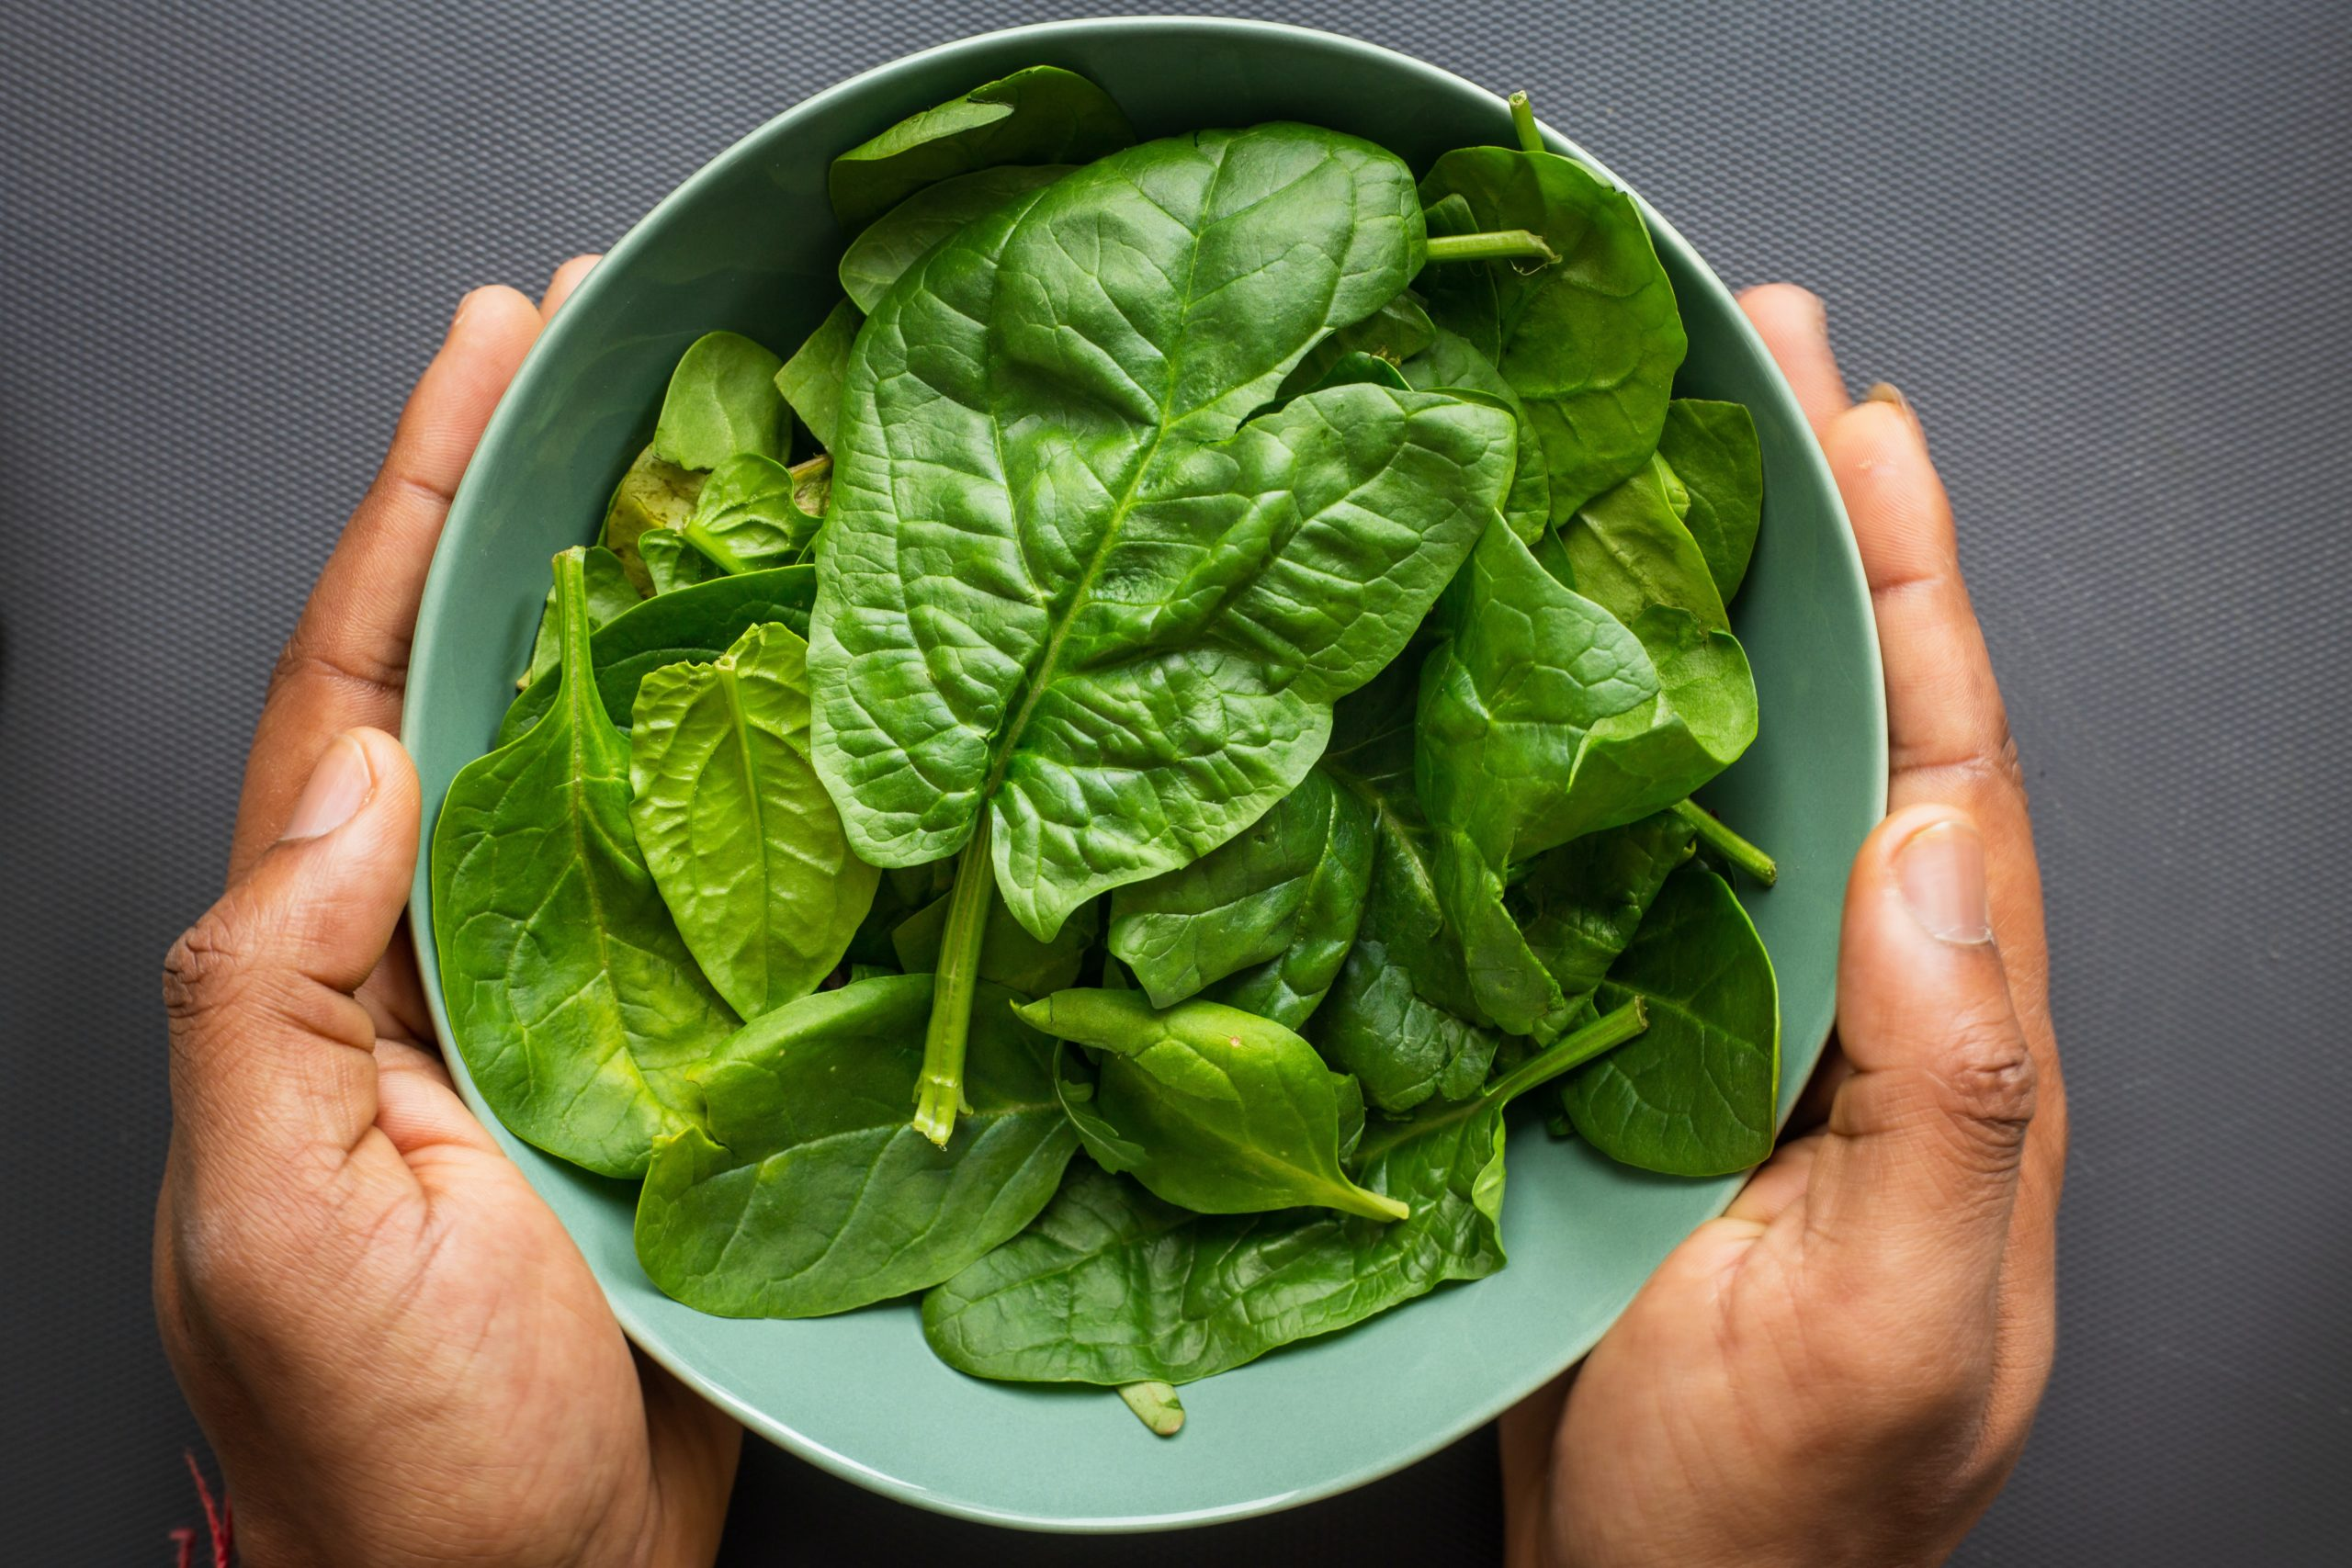 How to Cook Spinach in a Pan